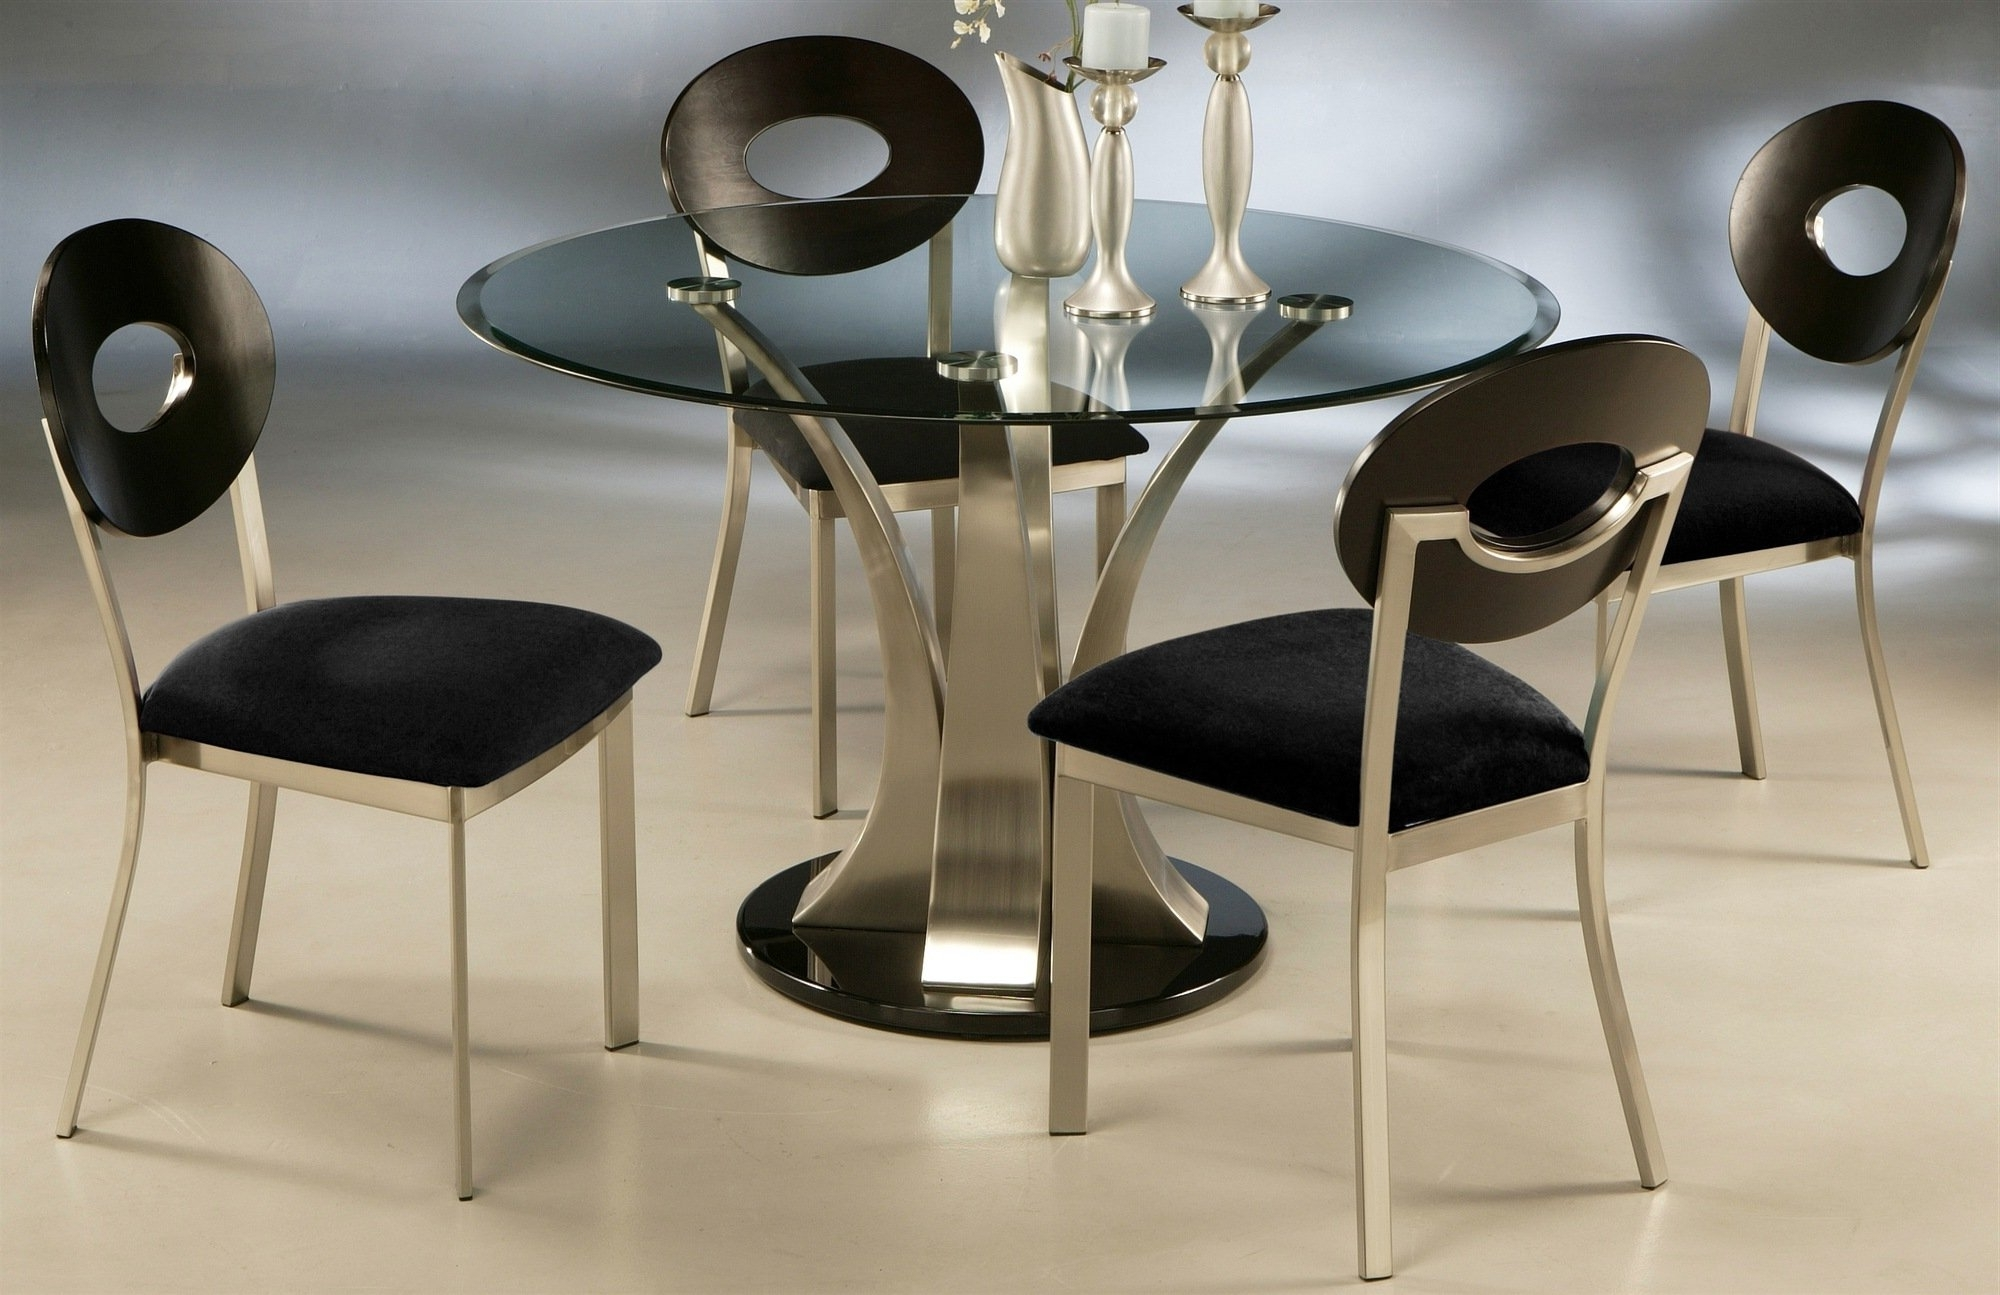 Curved Glass Dining Tables Intended For Recent Black Beveled Glass Top For Dining Table With C Shape Brushed Steel (View 6 of 25)